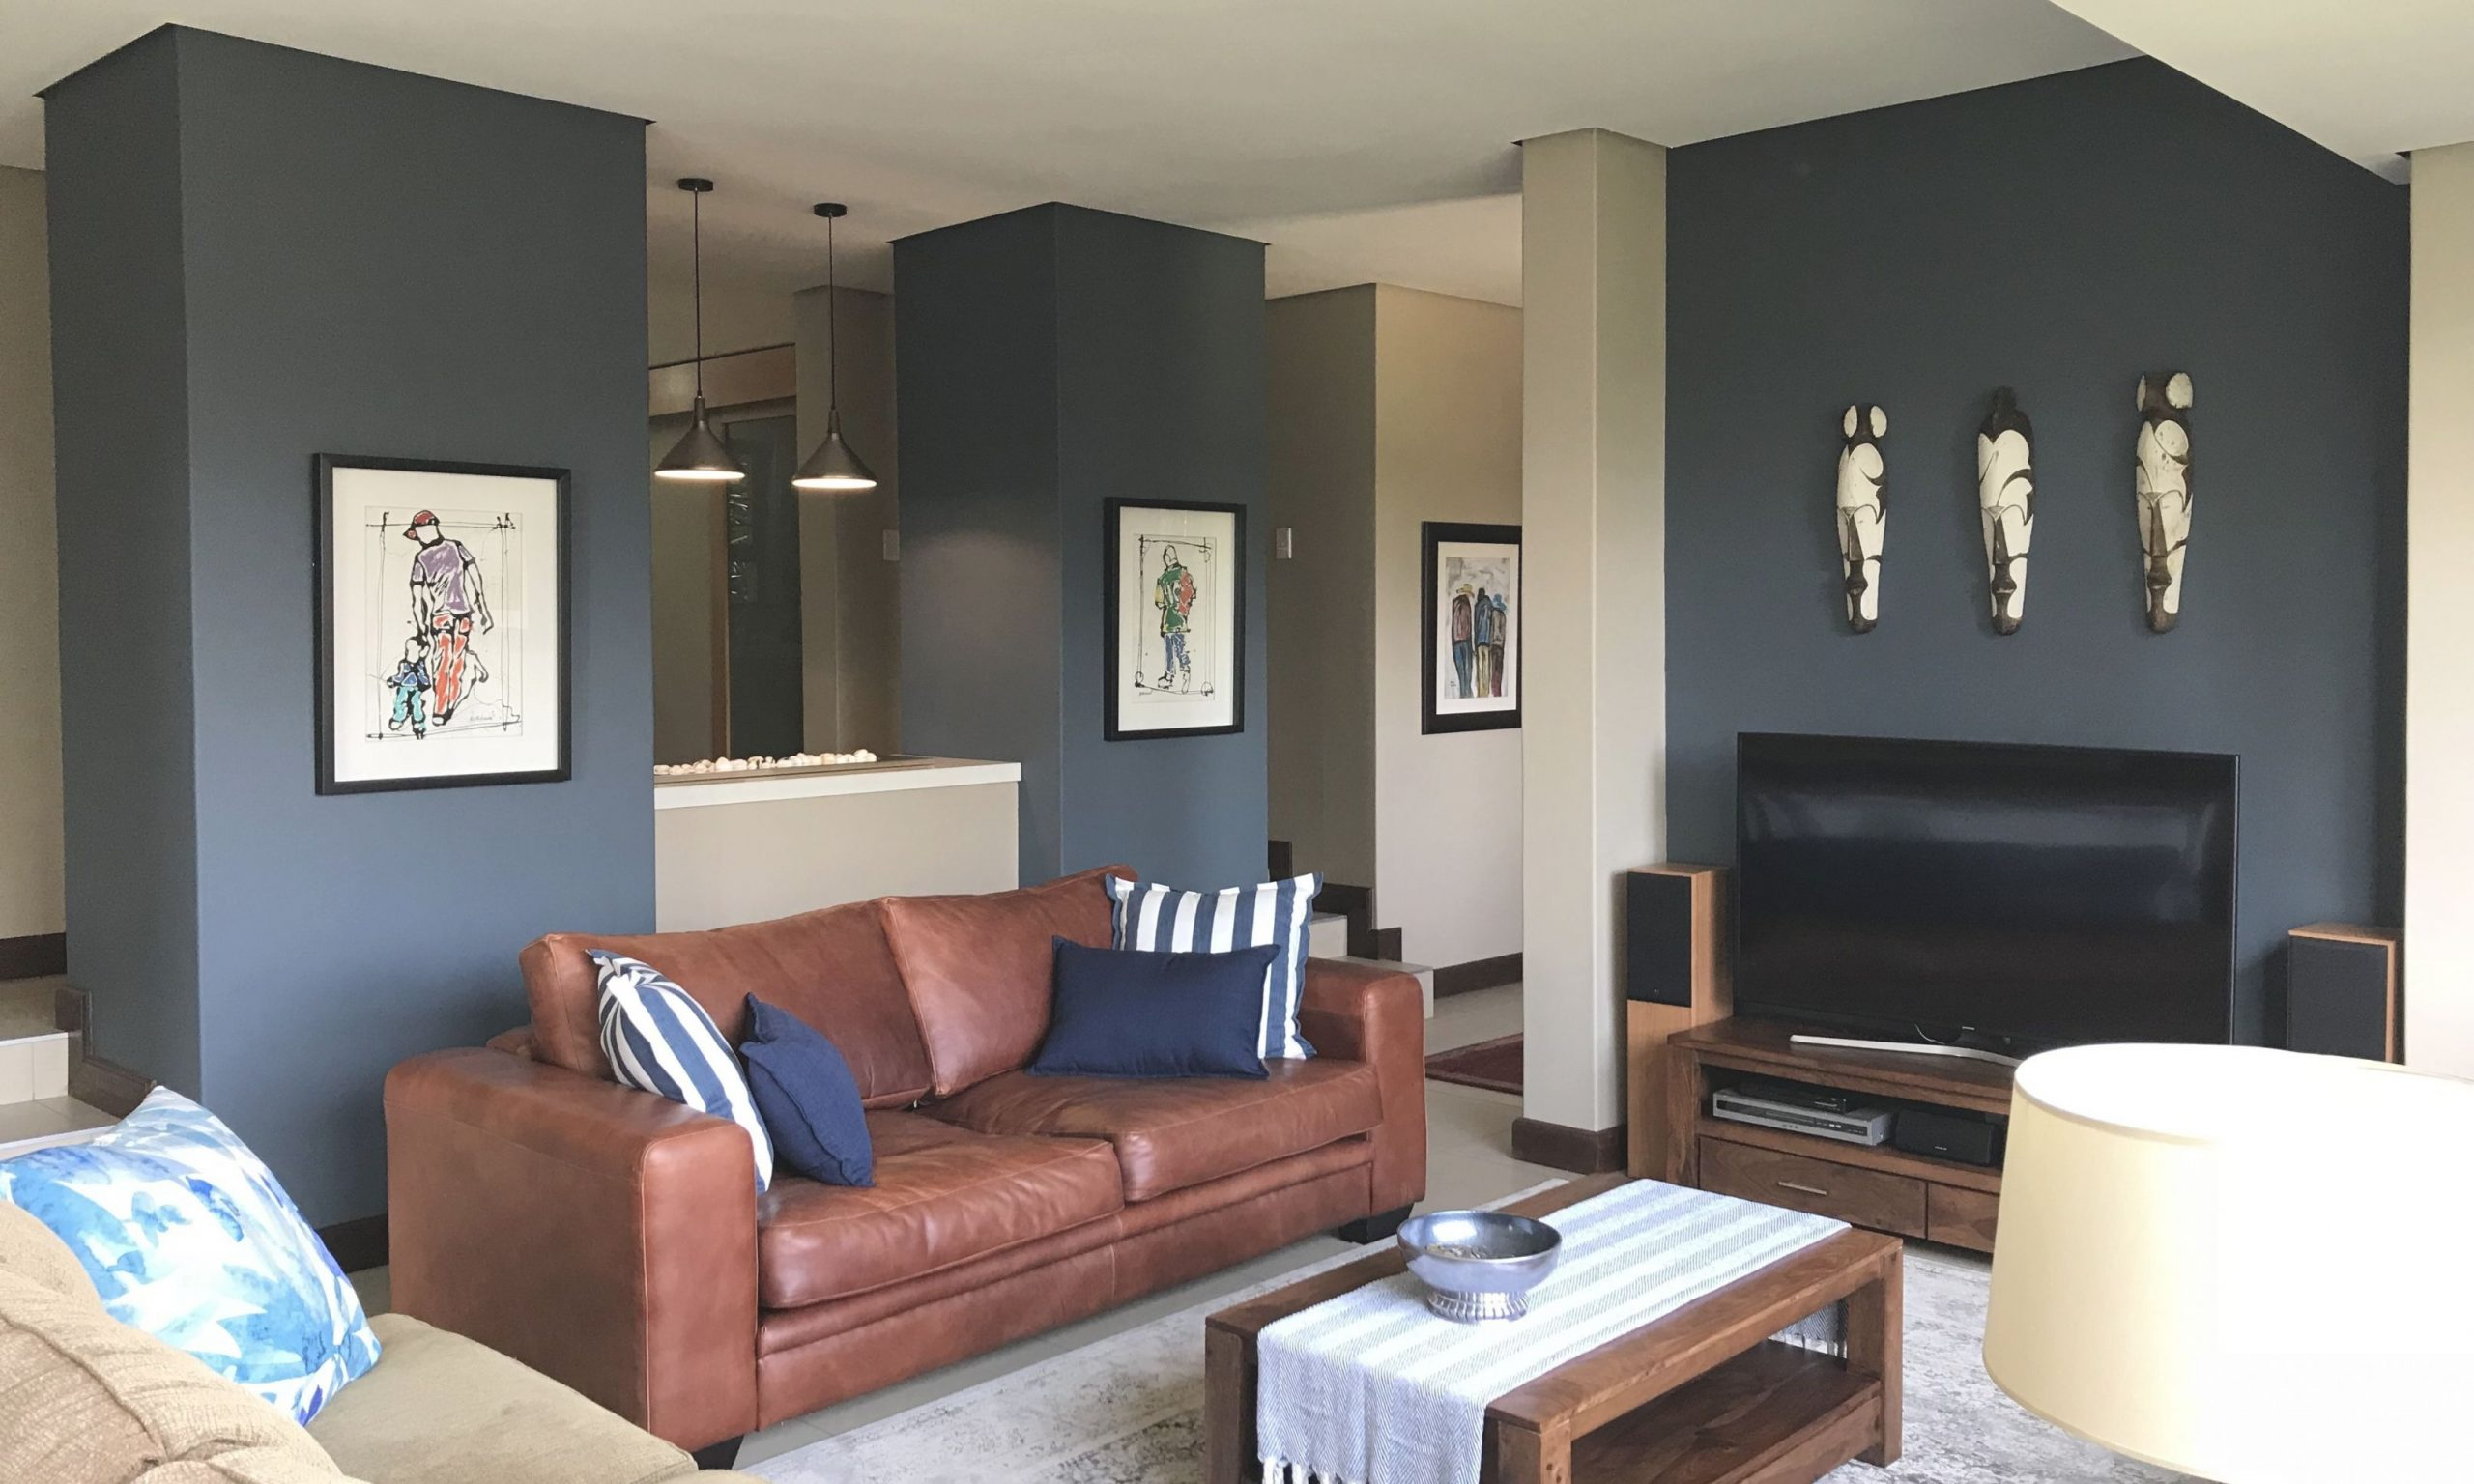 Living Room With Tan Leather Couch And Indigo Blue Walls within Blue And Tan Living Room